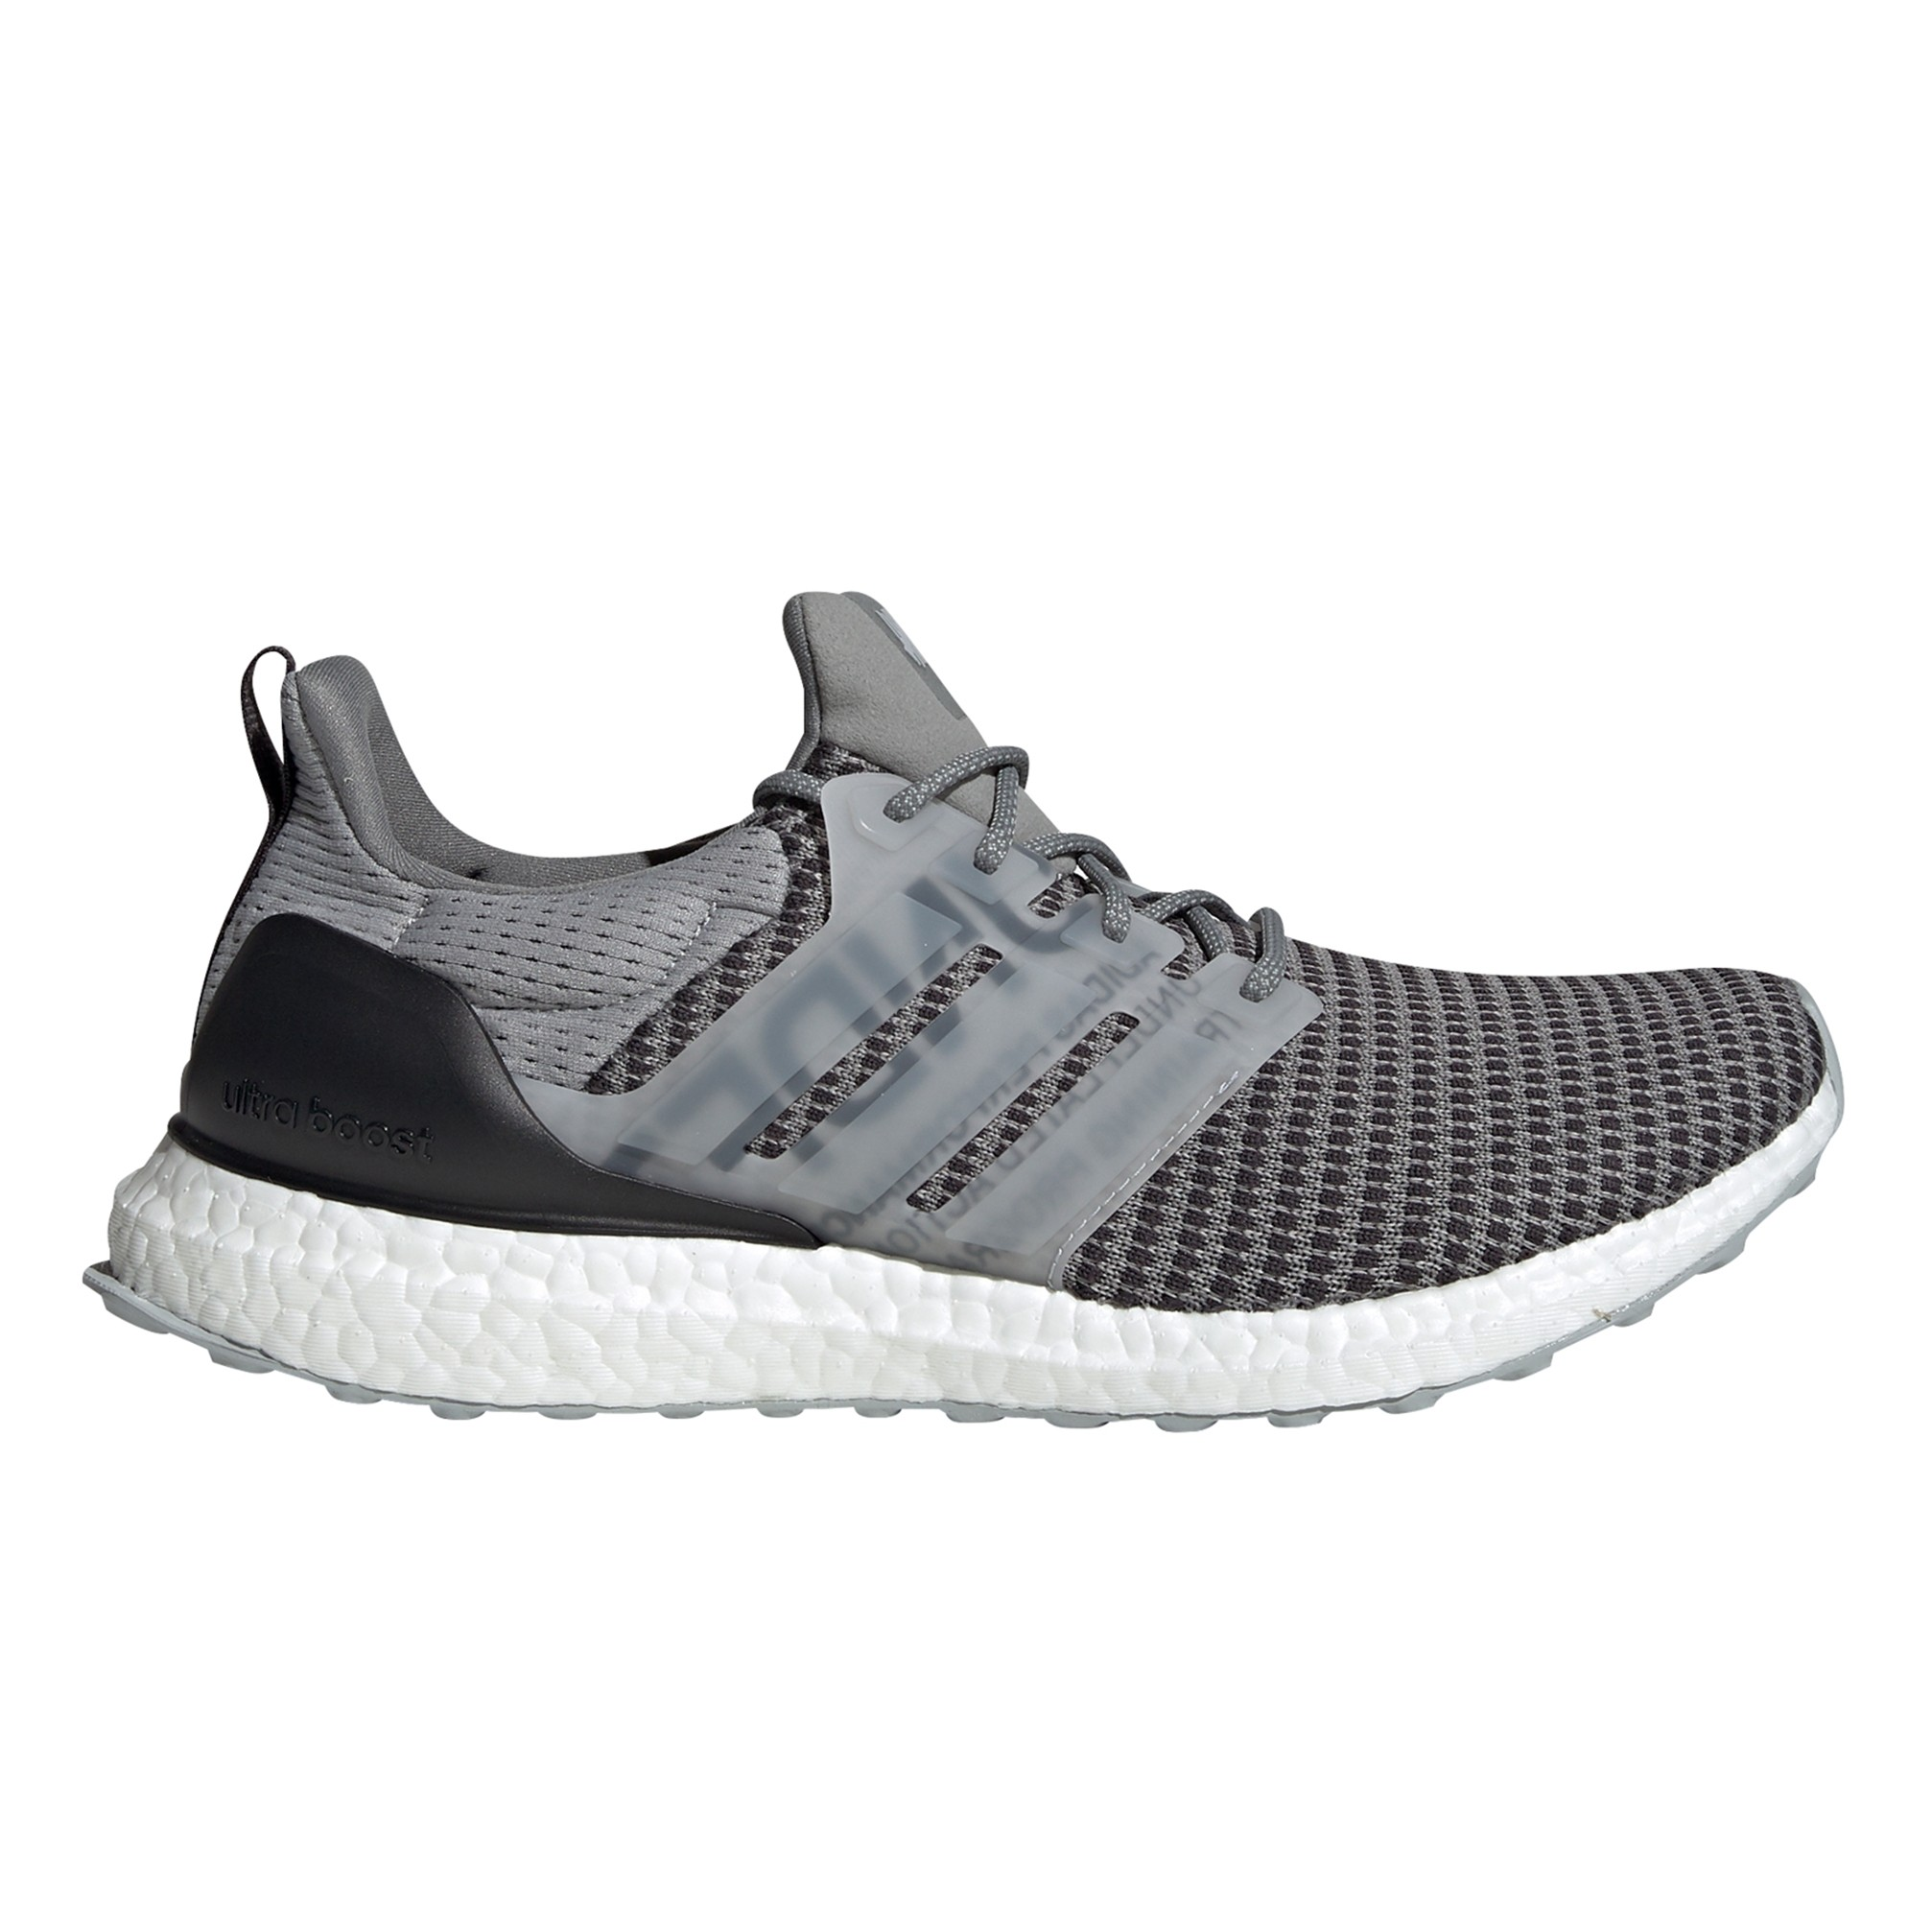 hot sales 52fbb 46552 adidas by UNDEFEATED UltraBOOST UNDFTD (Clear Onix/Clear Onix/Clear Onix)